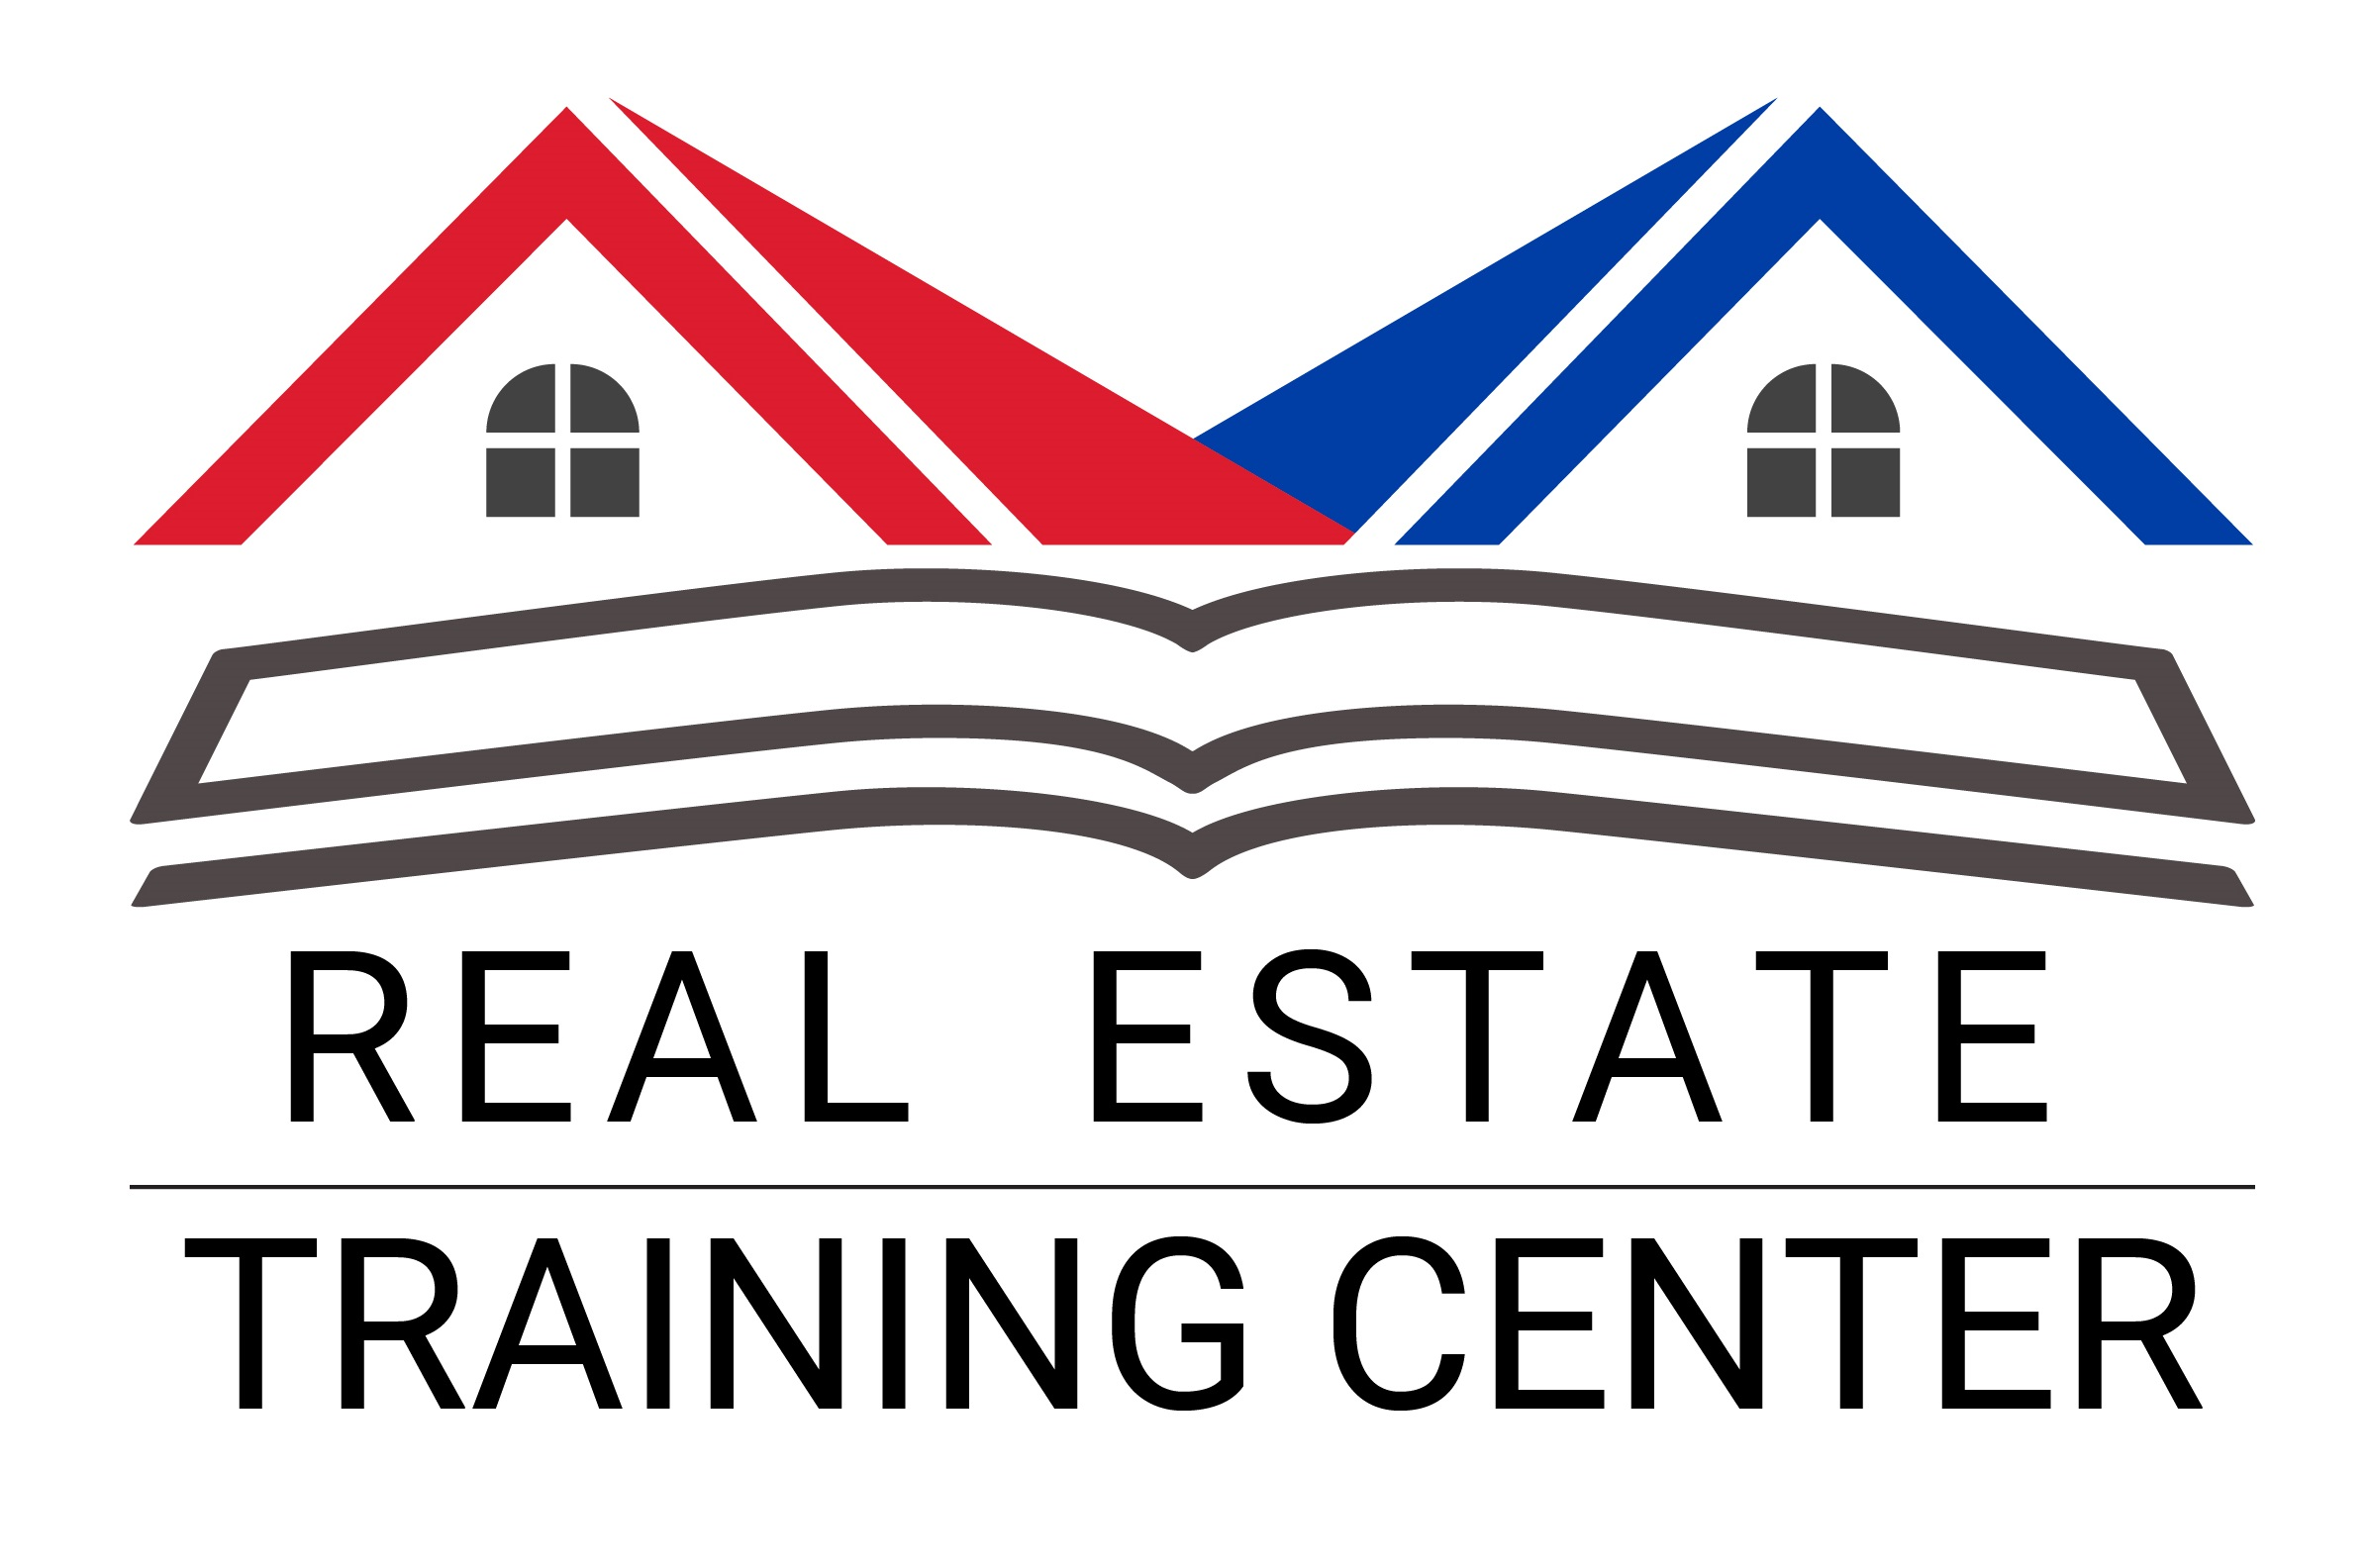 Real Estate Training Center for Property Agents